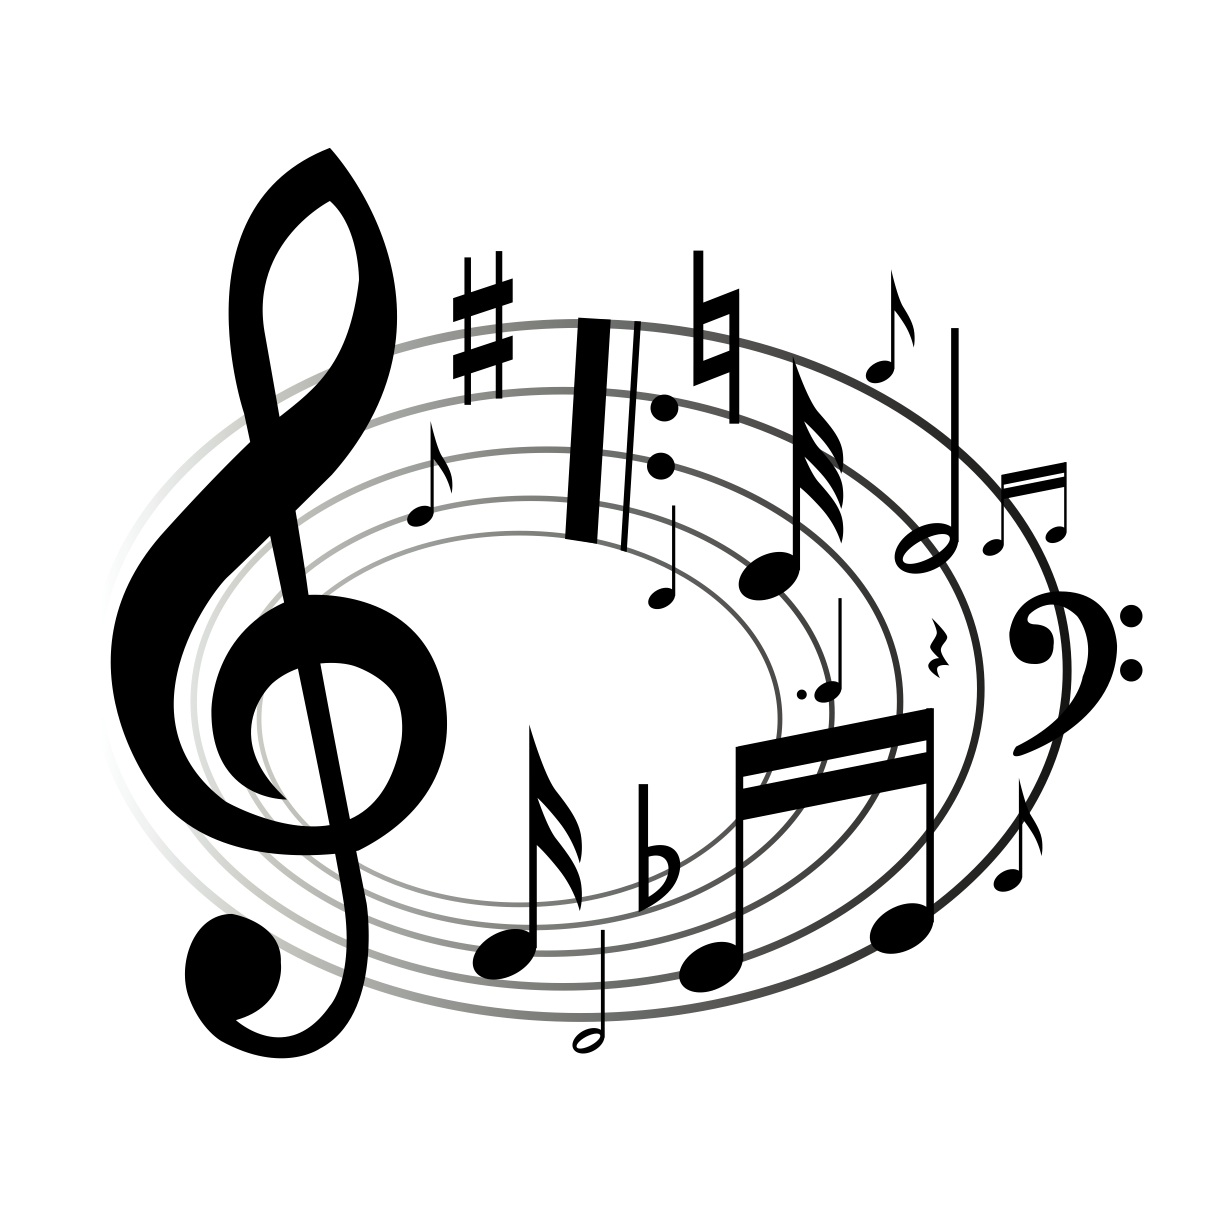 notes musical draw note clipart cliparts song clip singing computer designs cute